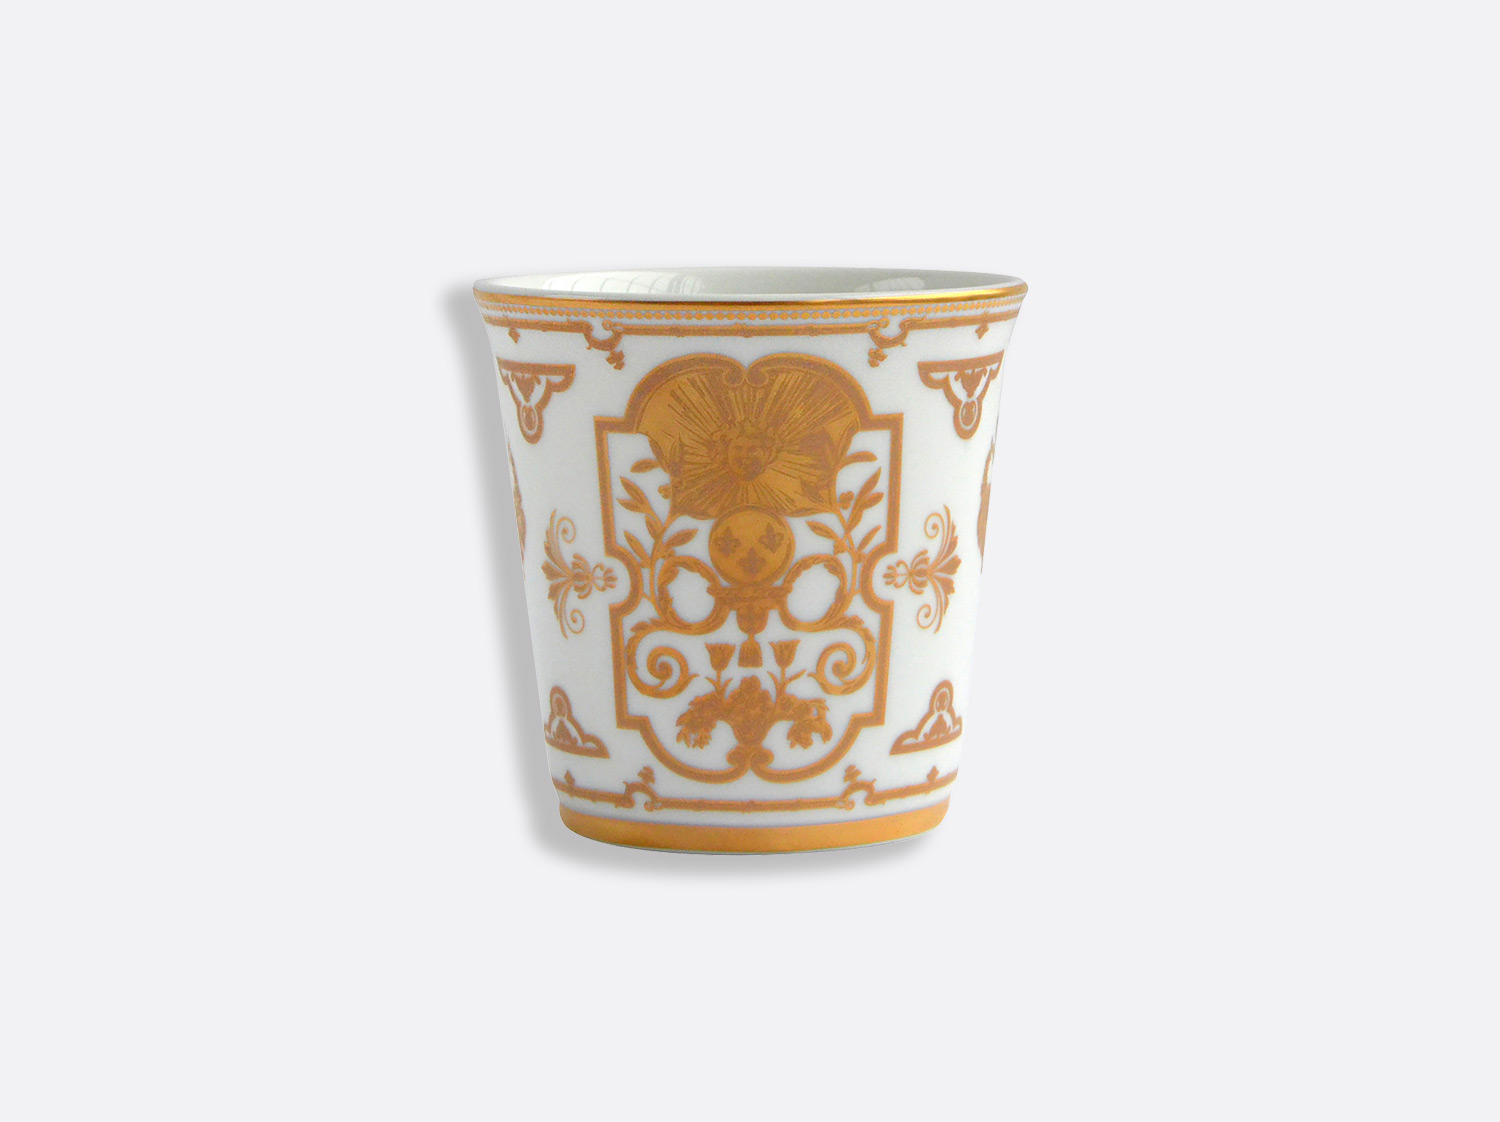 Pot 9 cm + bougie parfumée 200g en porcelaine de la collection Aux Rois Or Bernardaud